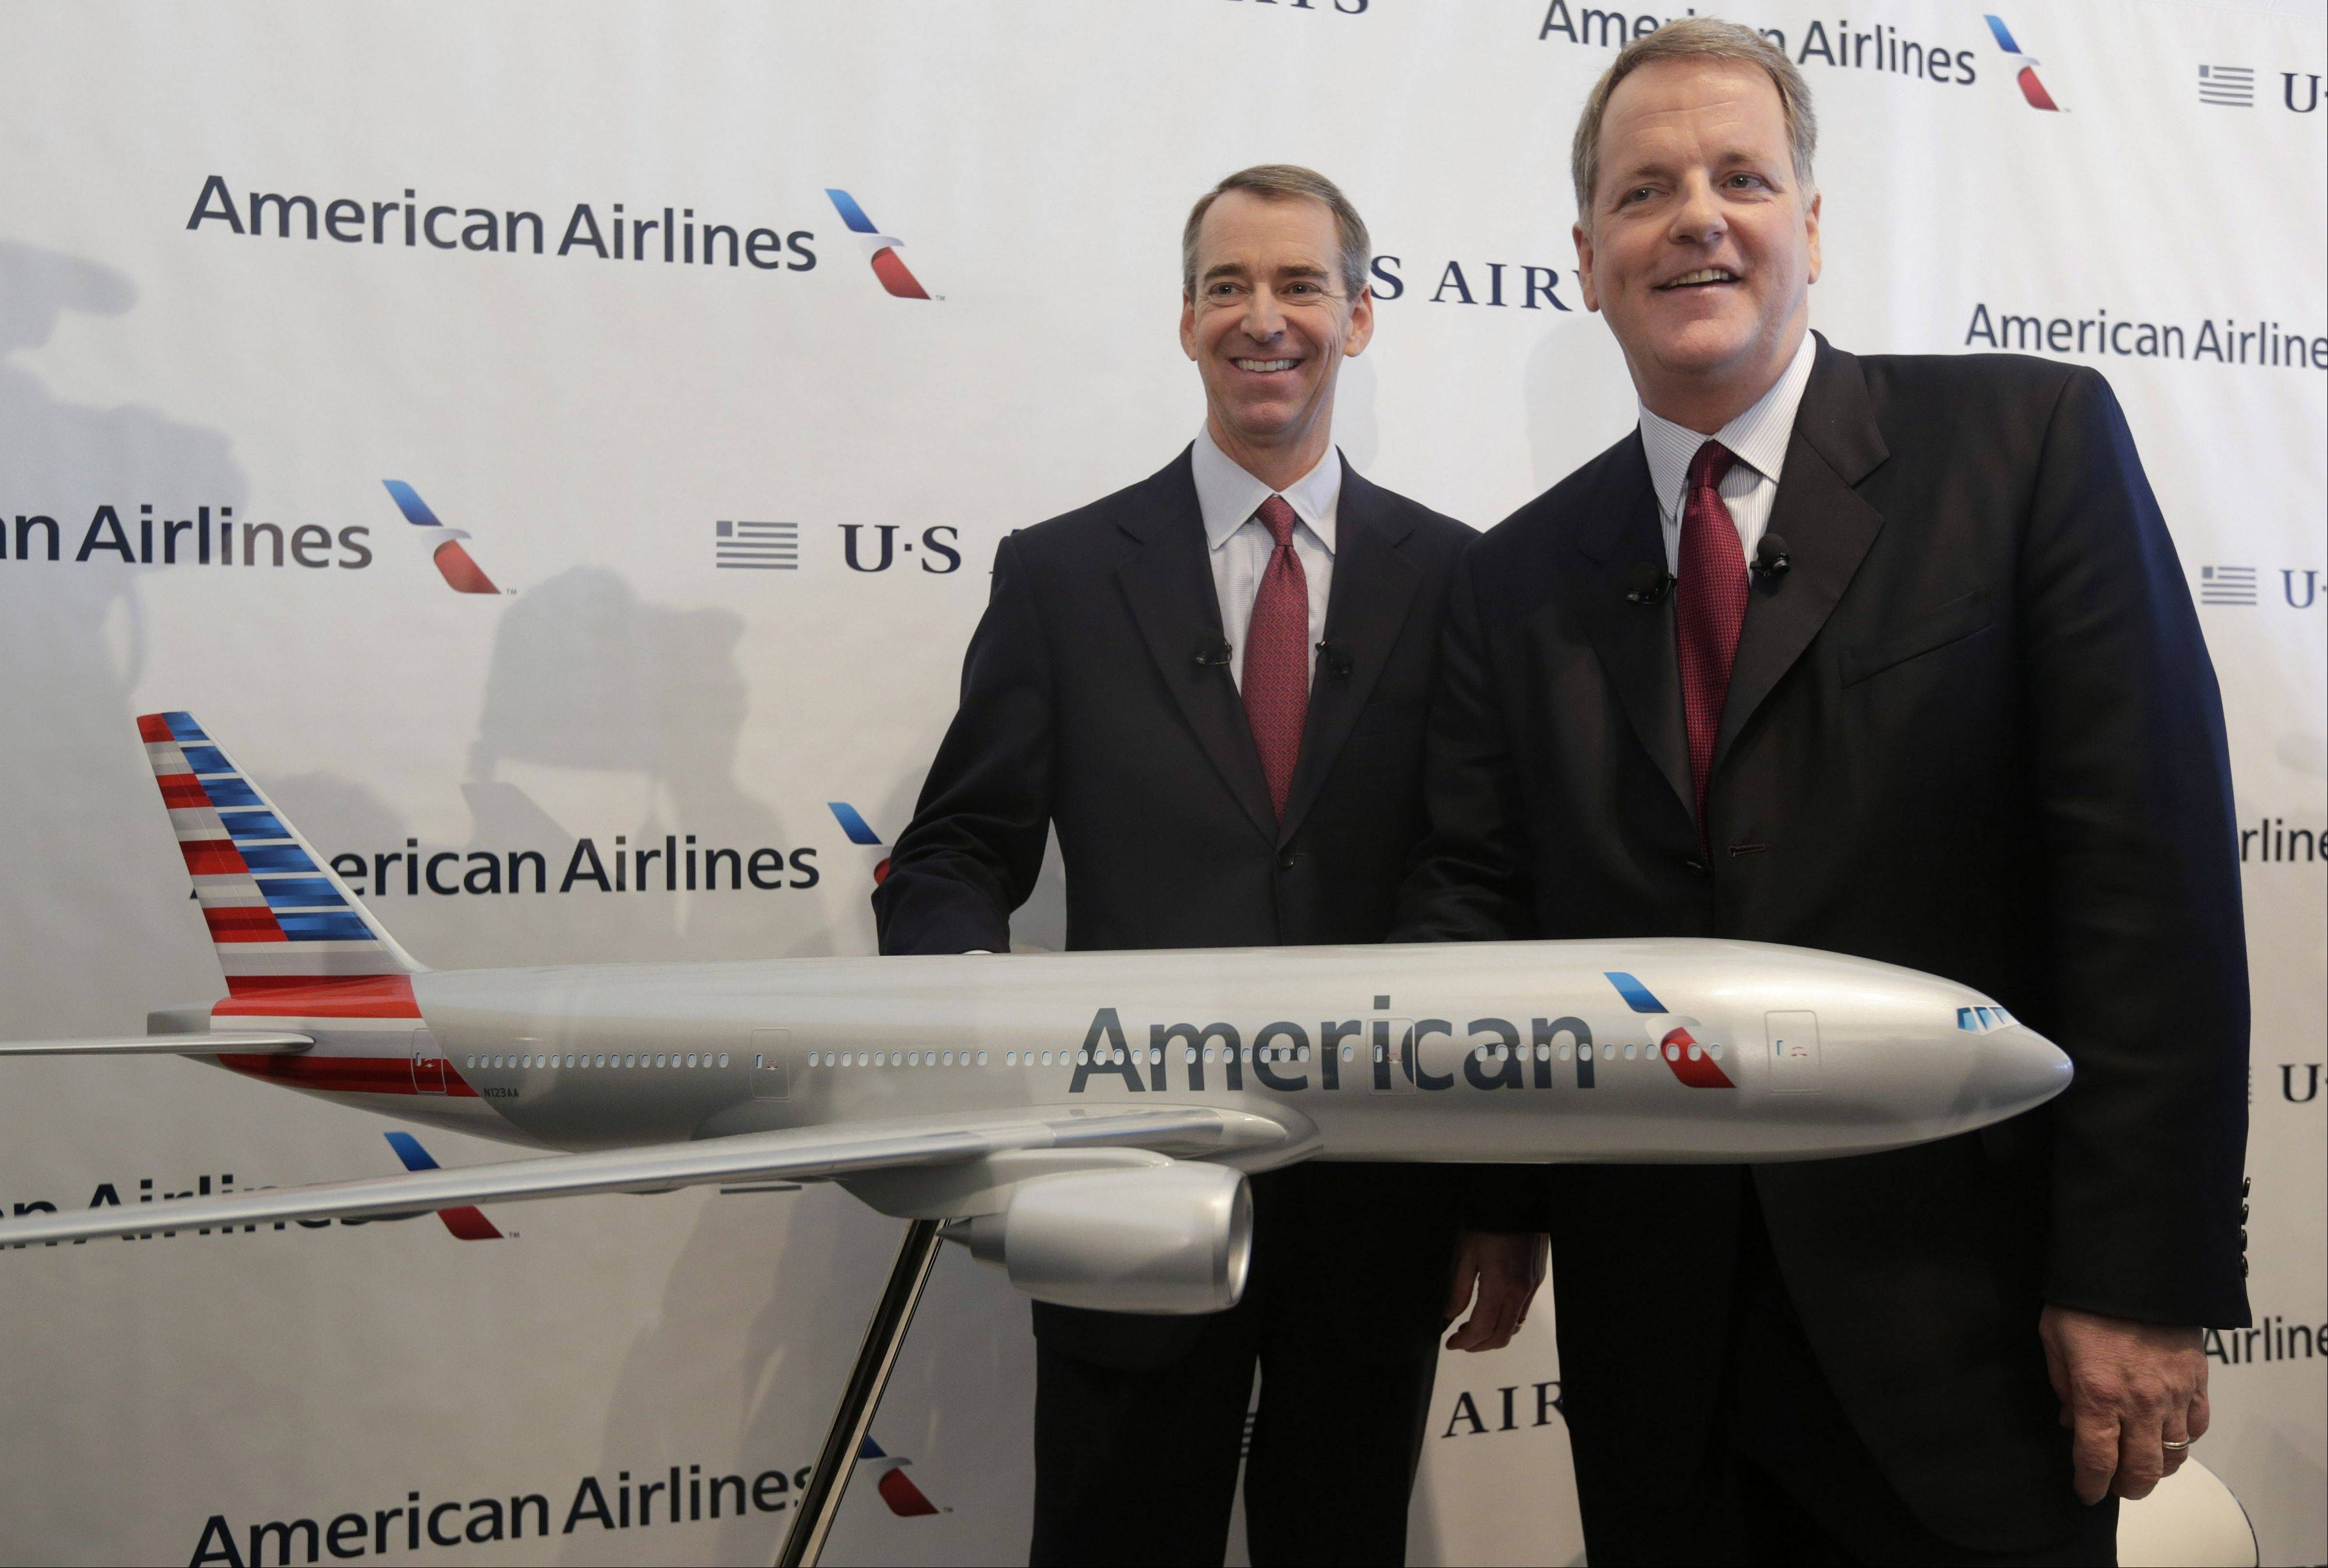 U.S. Airways CEO Doug Parker, right, and American Airlines CEO Tom Horton posed after a news conference on Feb. 14 to announce the merger of their airlines.